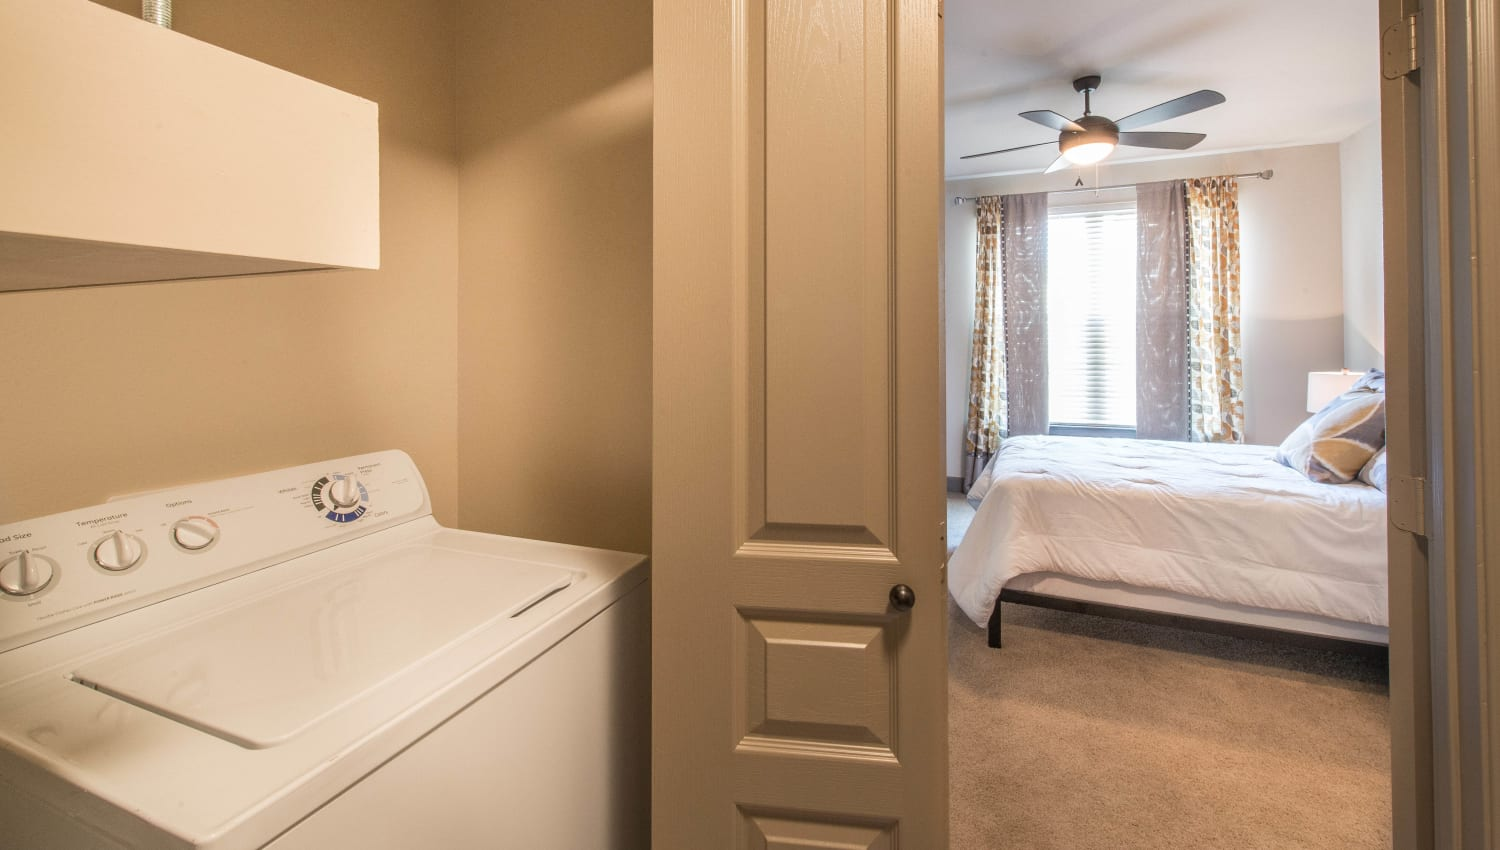 Full-size in-unit washer and dryer in a model home at Union At Carrollton Square in Carrollton, Texas